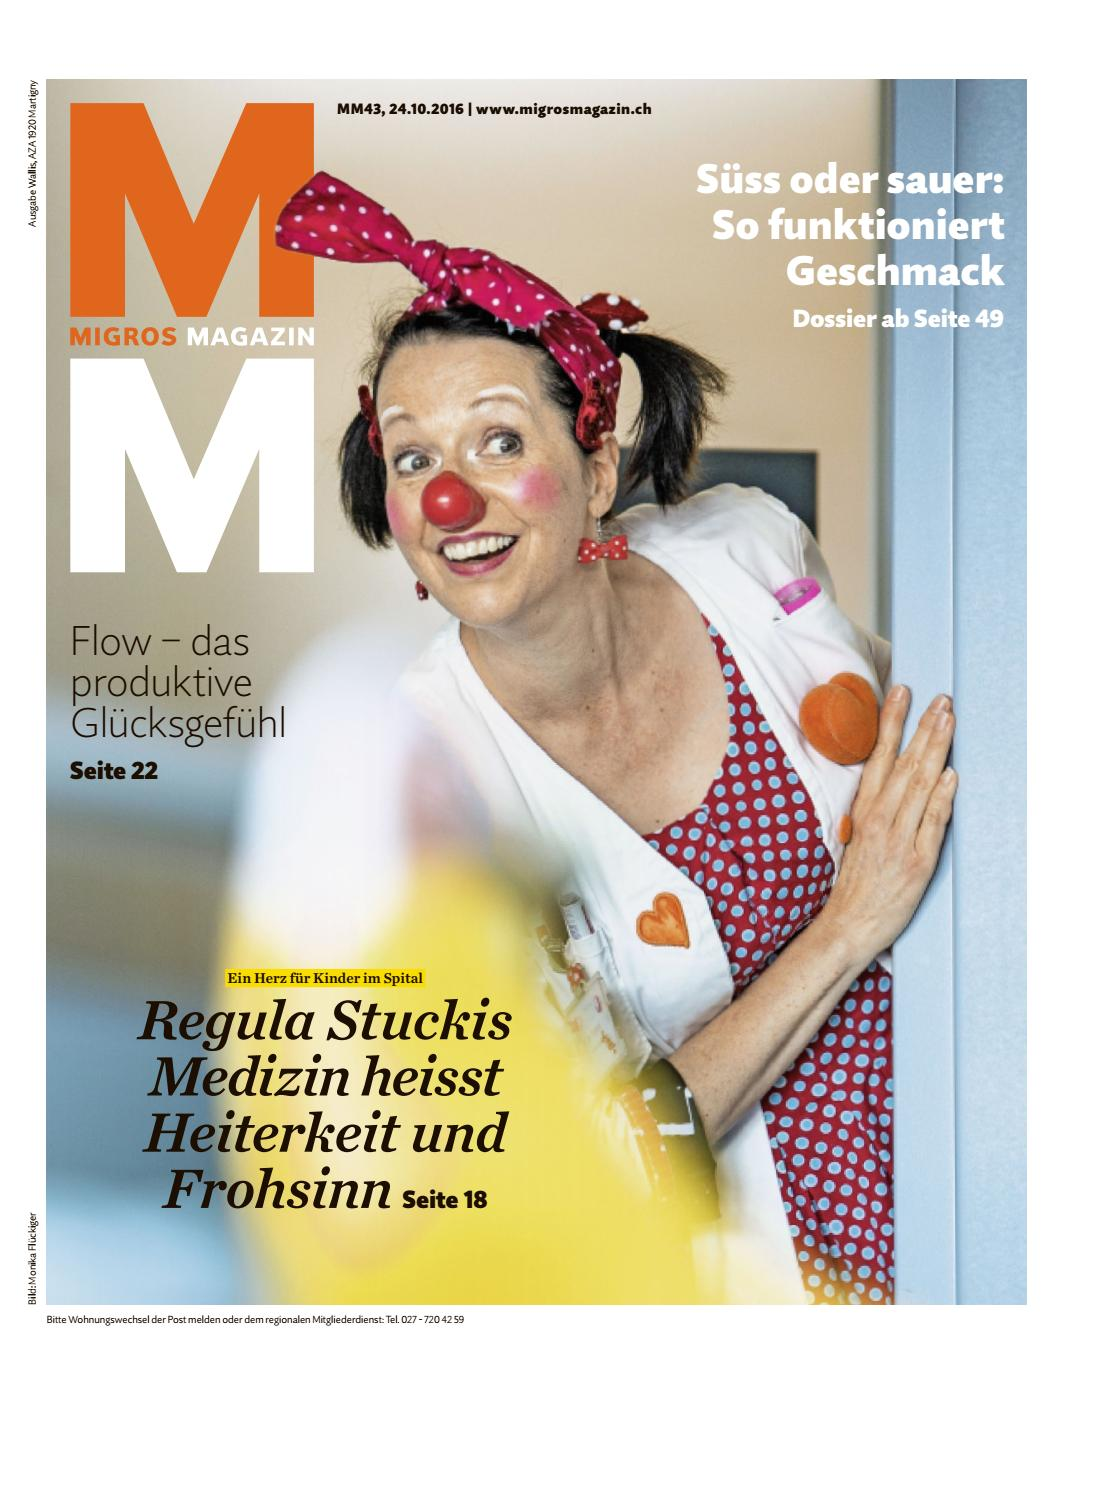 Clown Schminken Suess Migros Magazin 43 2016 D Vs By Migros Genossenschafts Bund Issuu